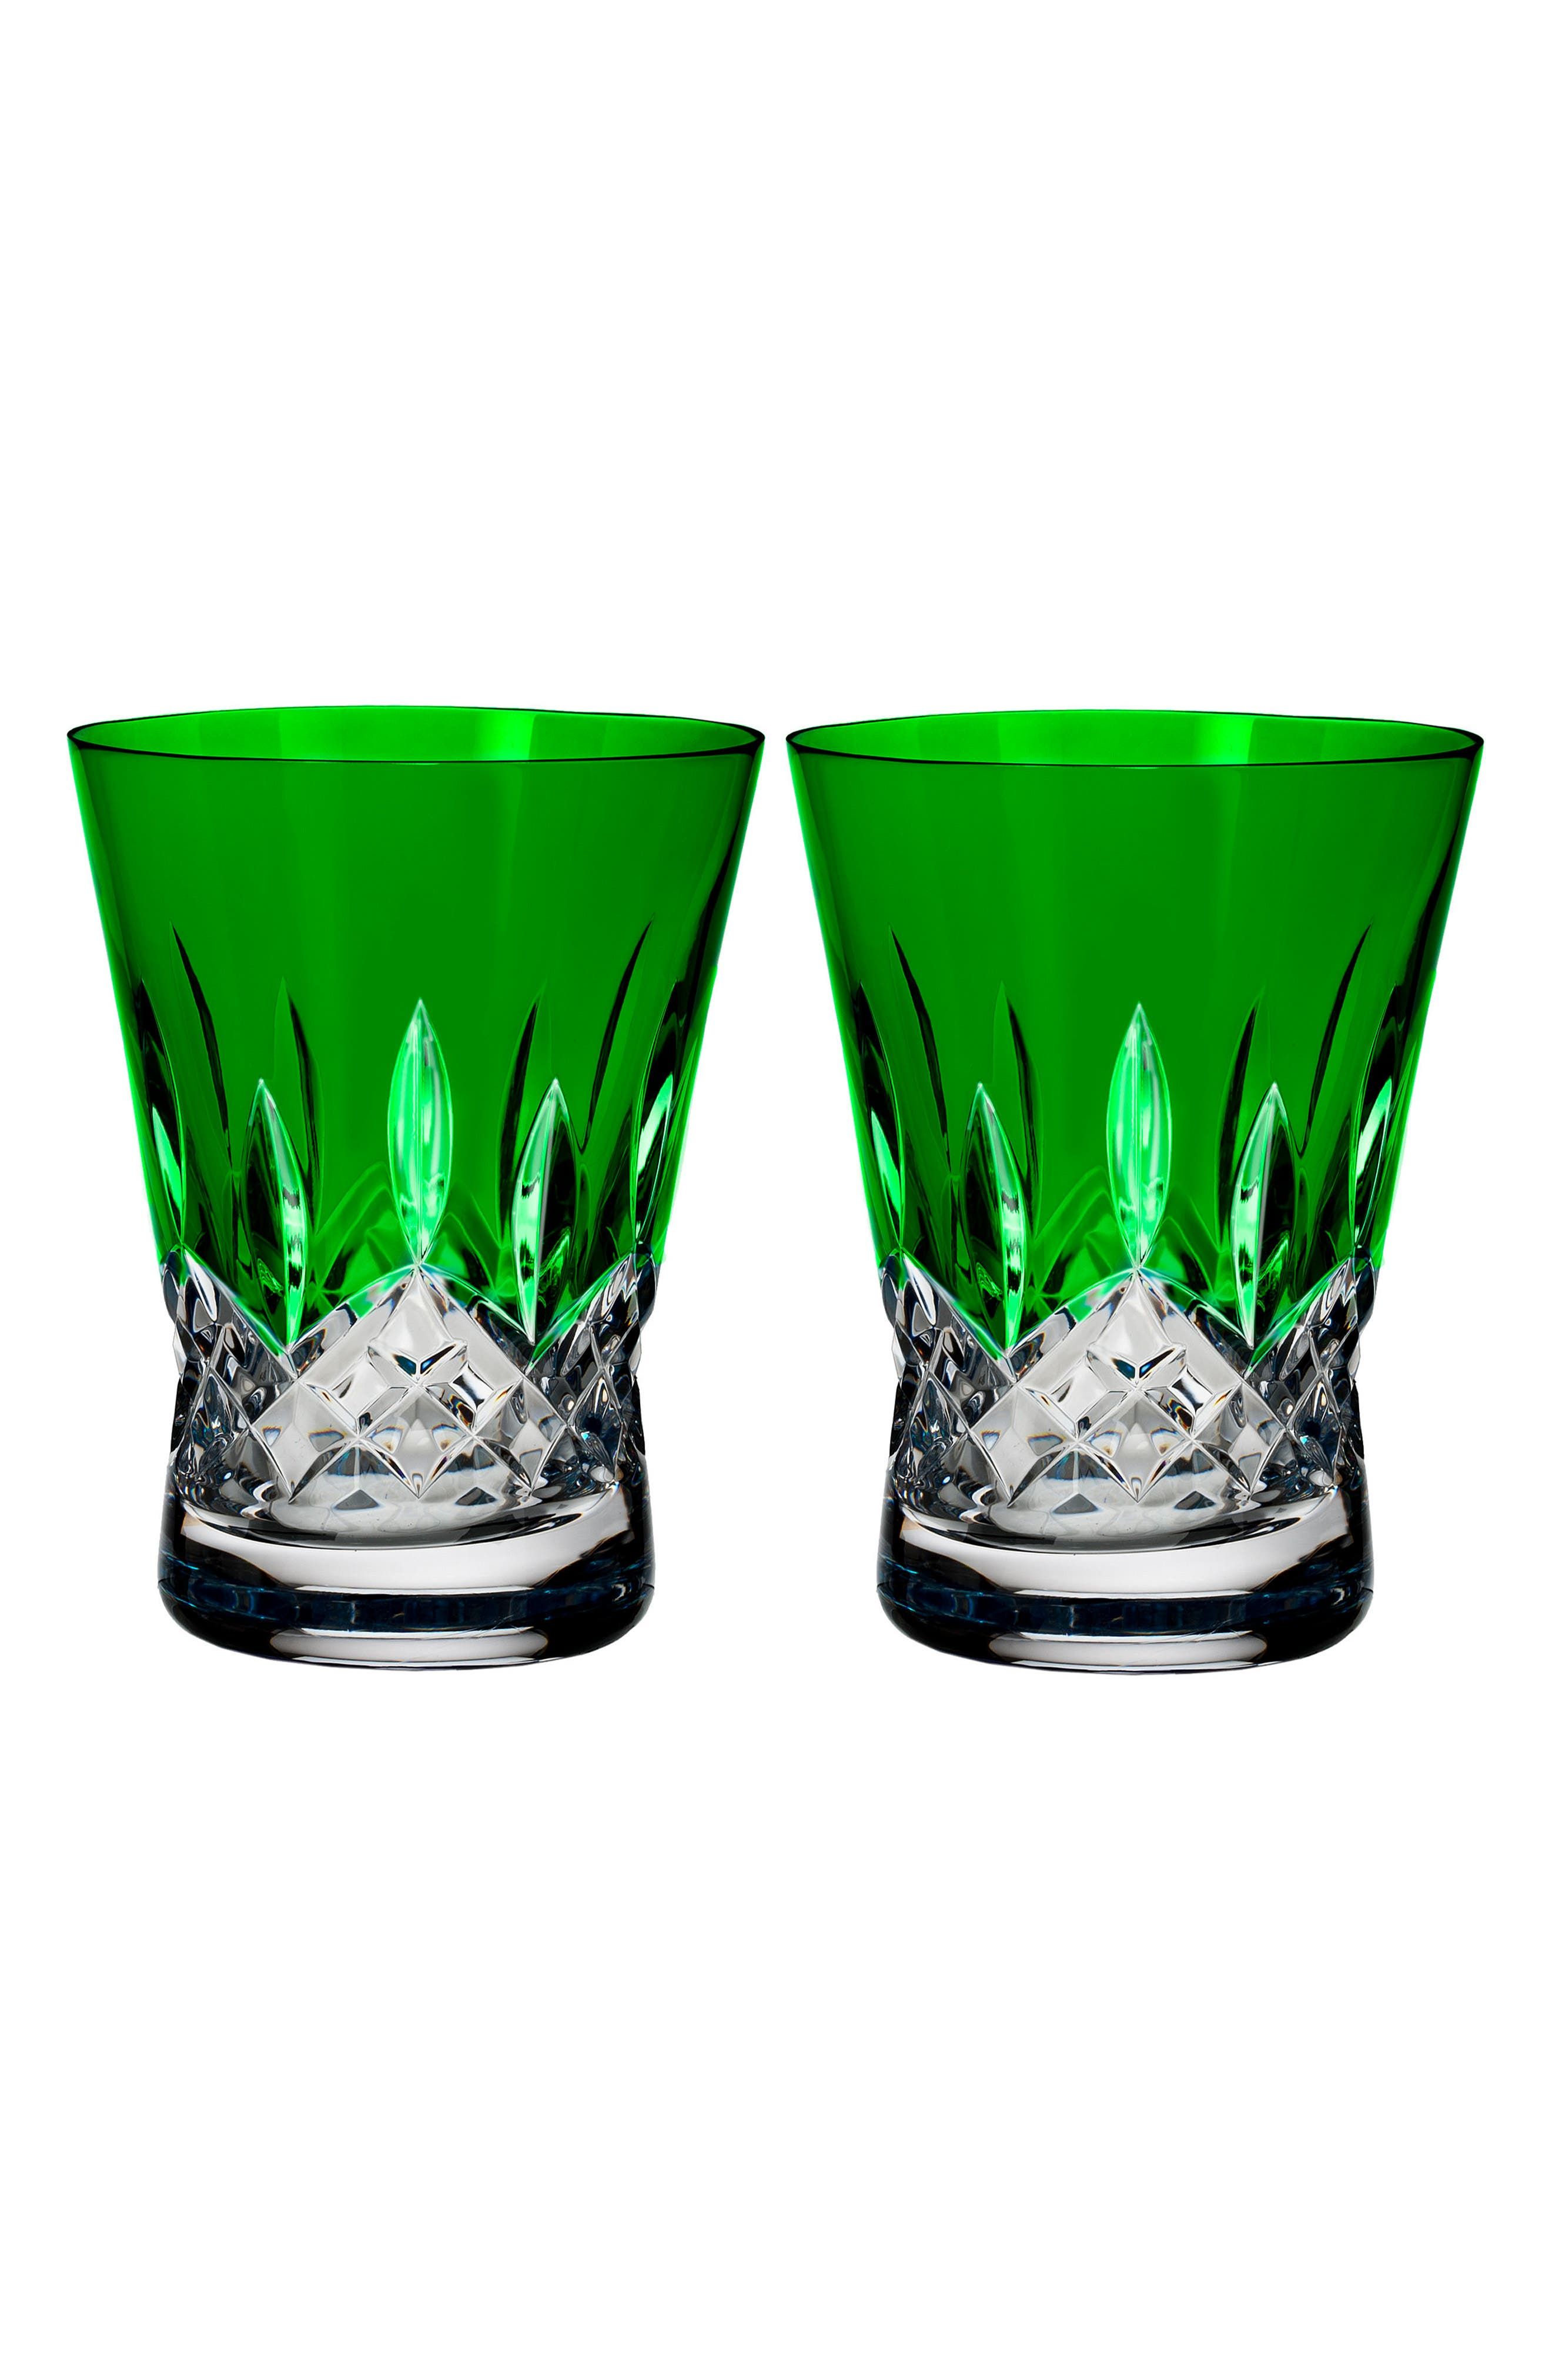 Waterford Lismore Pops Set of 2 Emerald Lead Crystal Double Old Fashioned Glasses